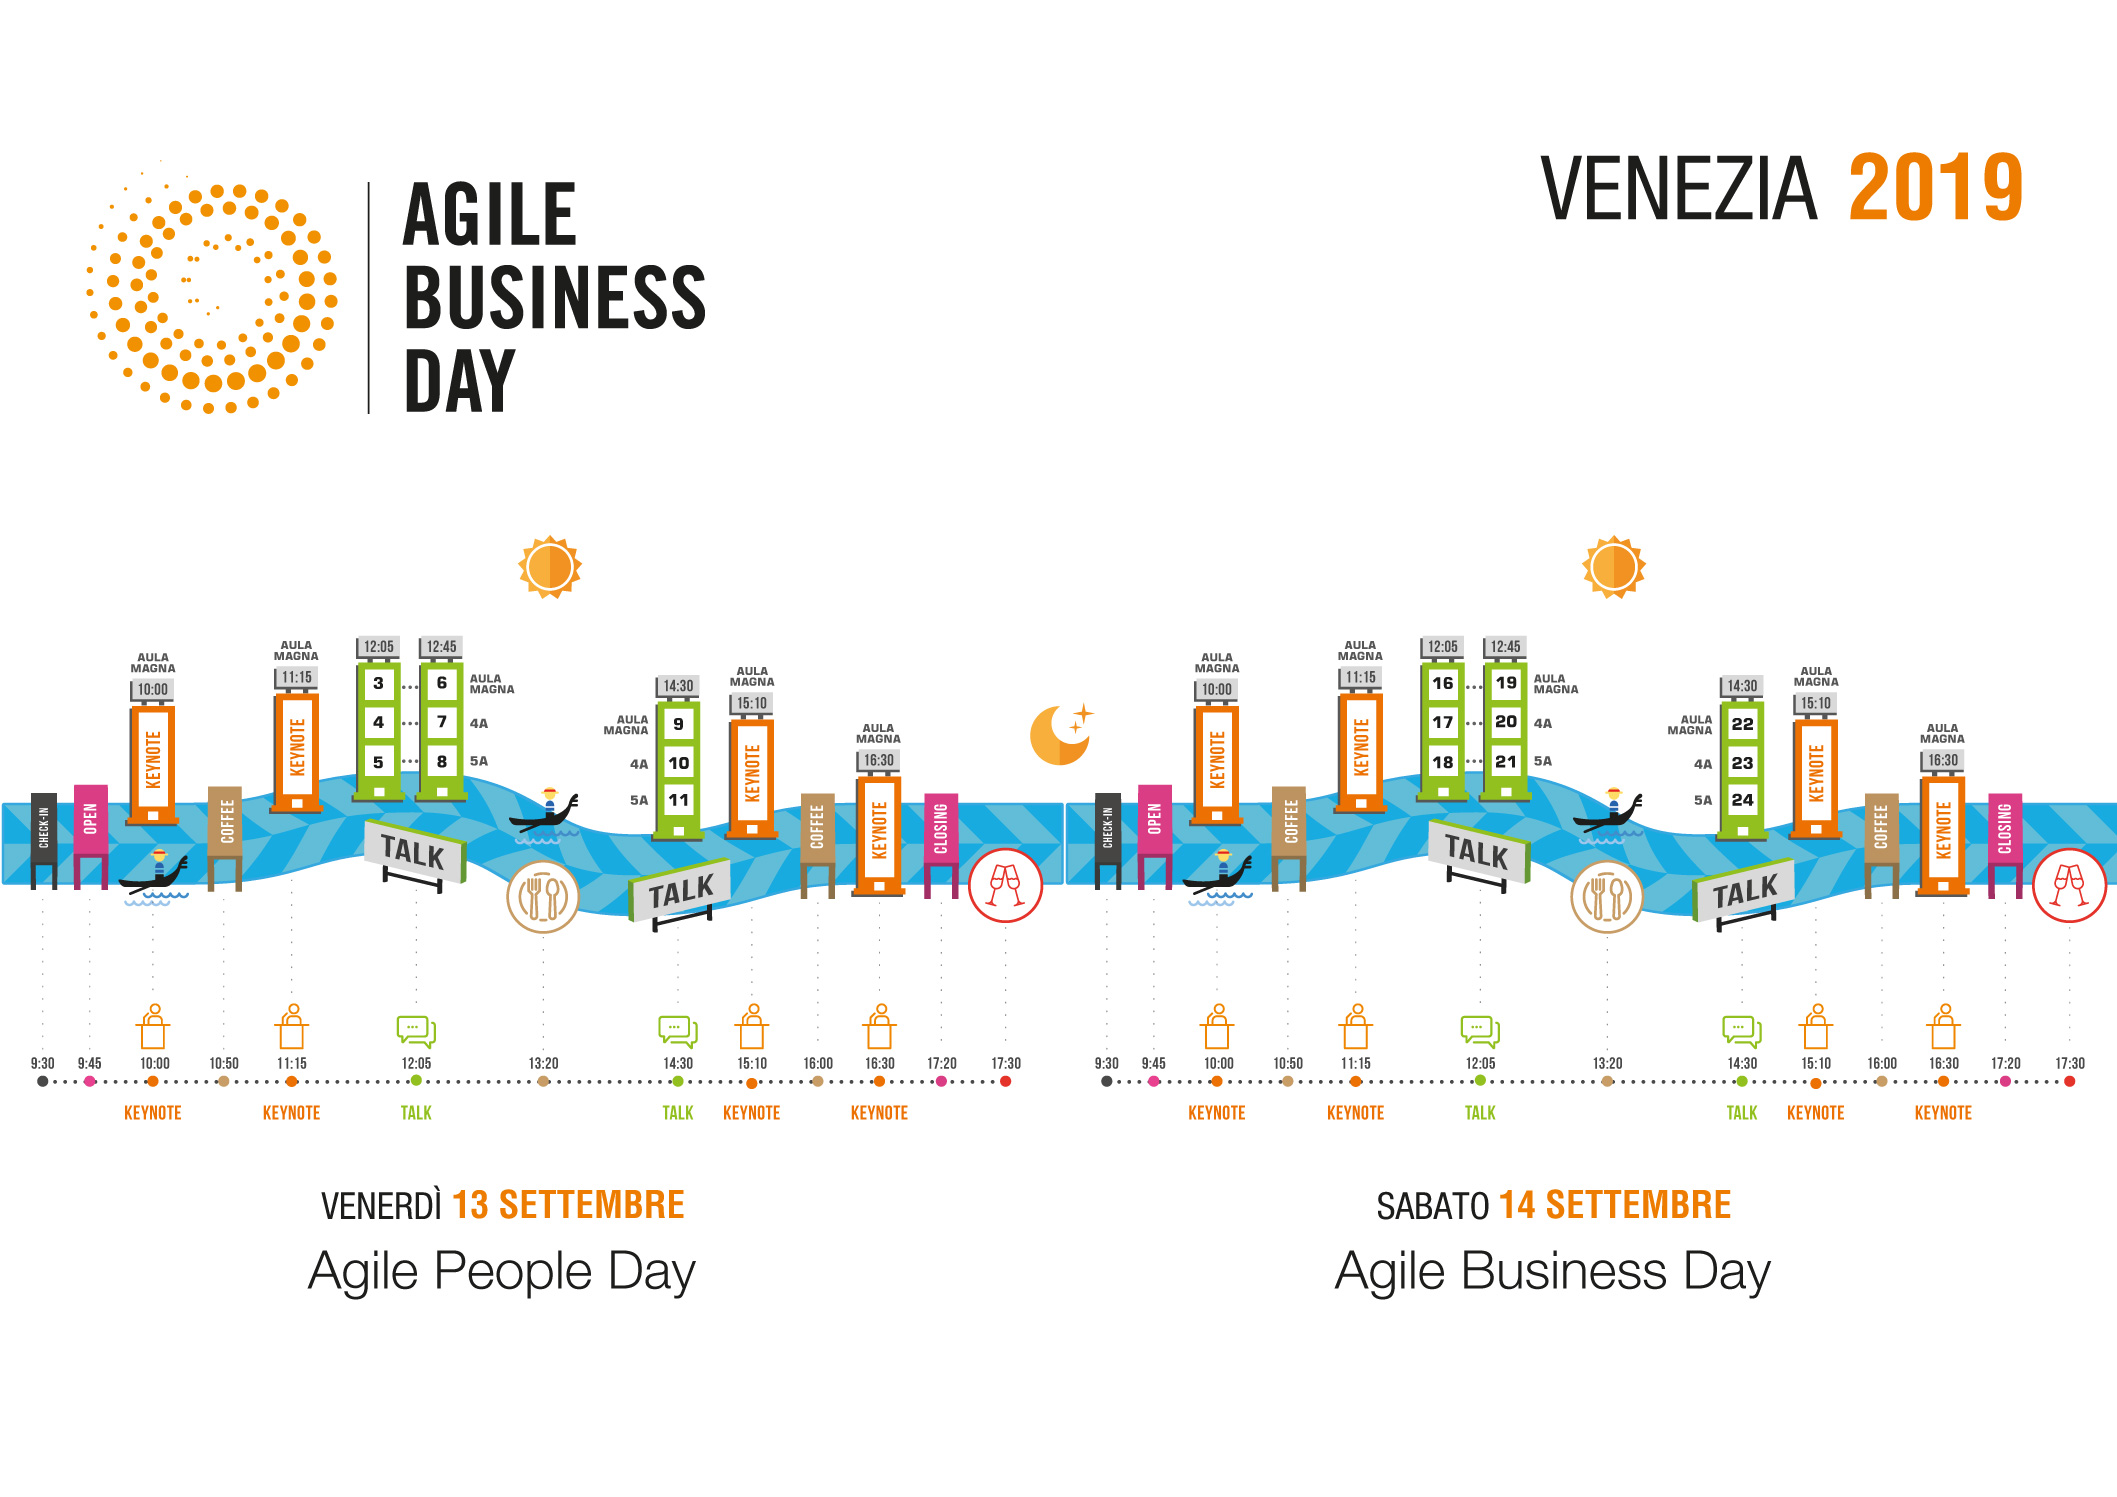 Agile Business Day - Agile Business Day